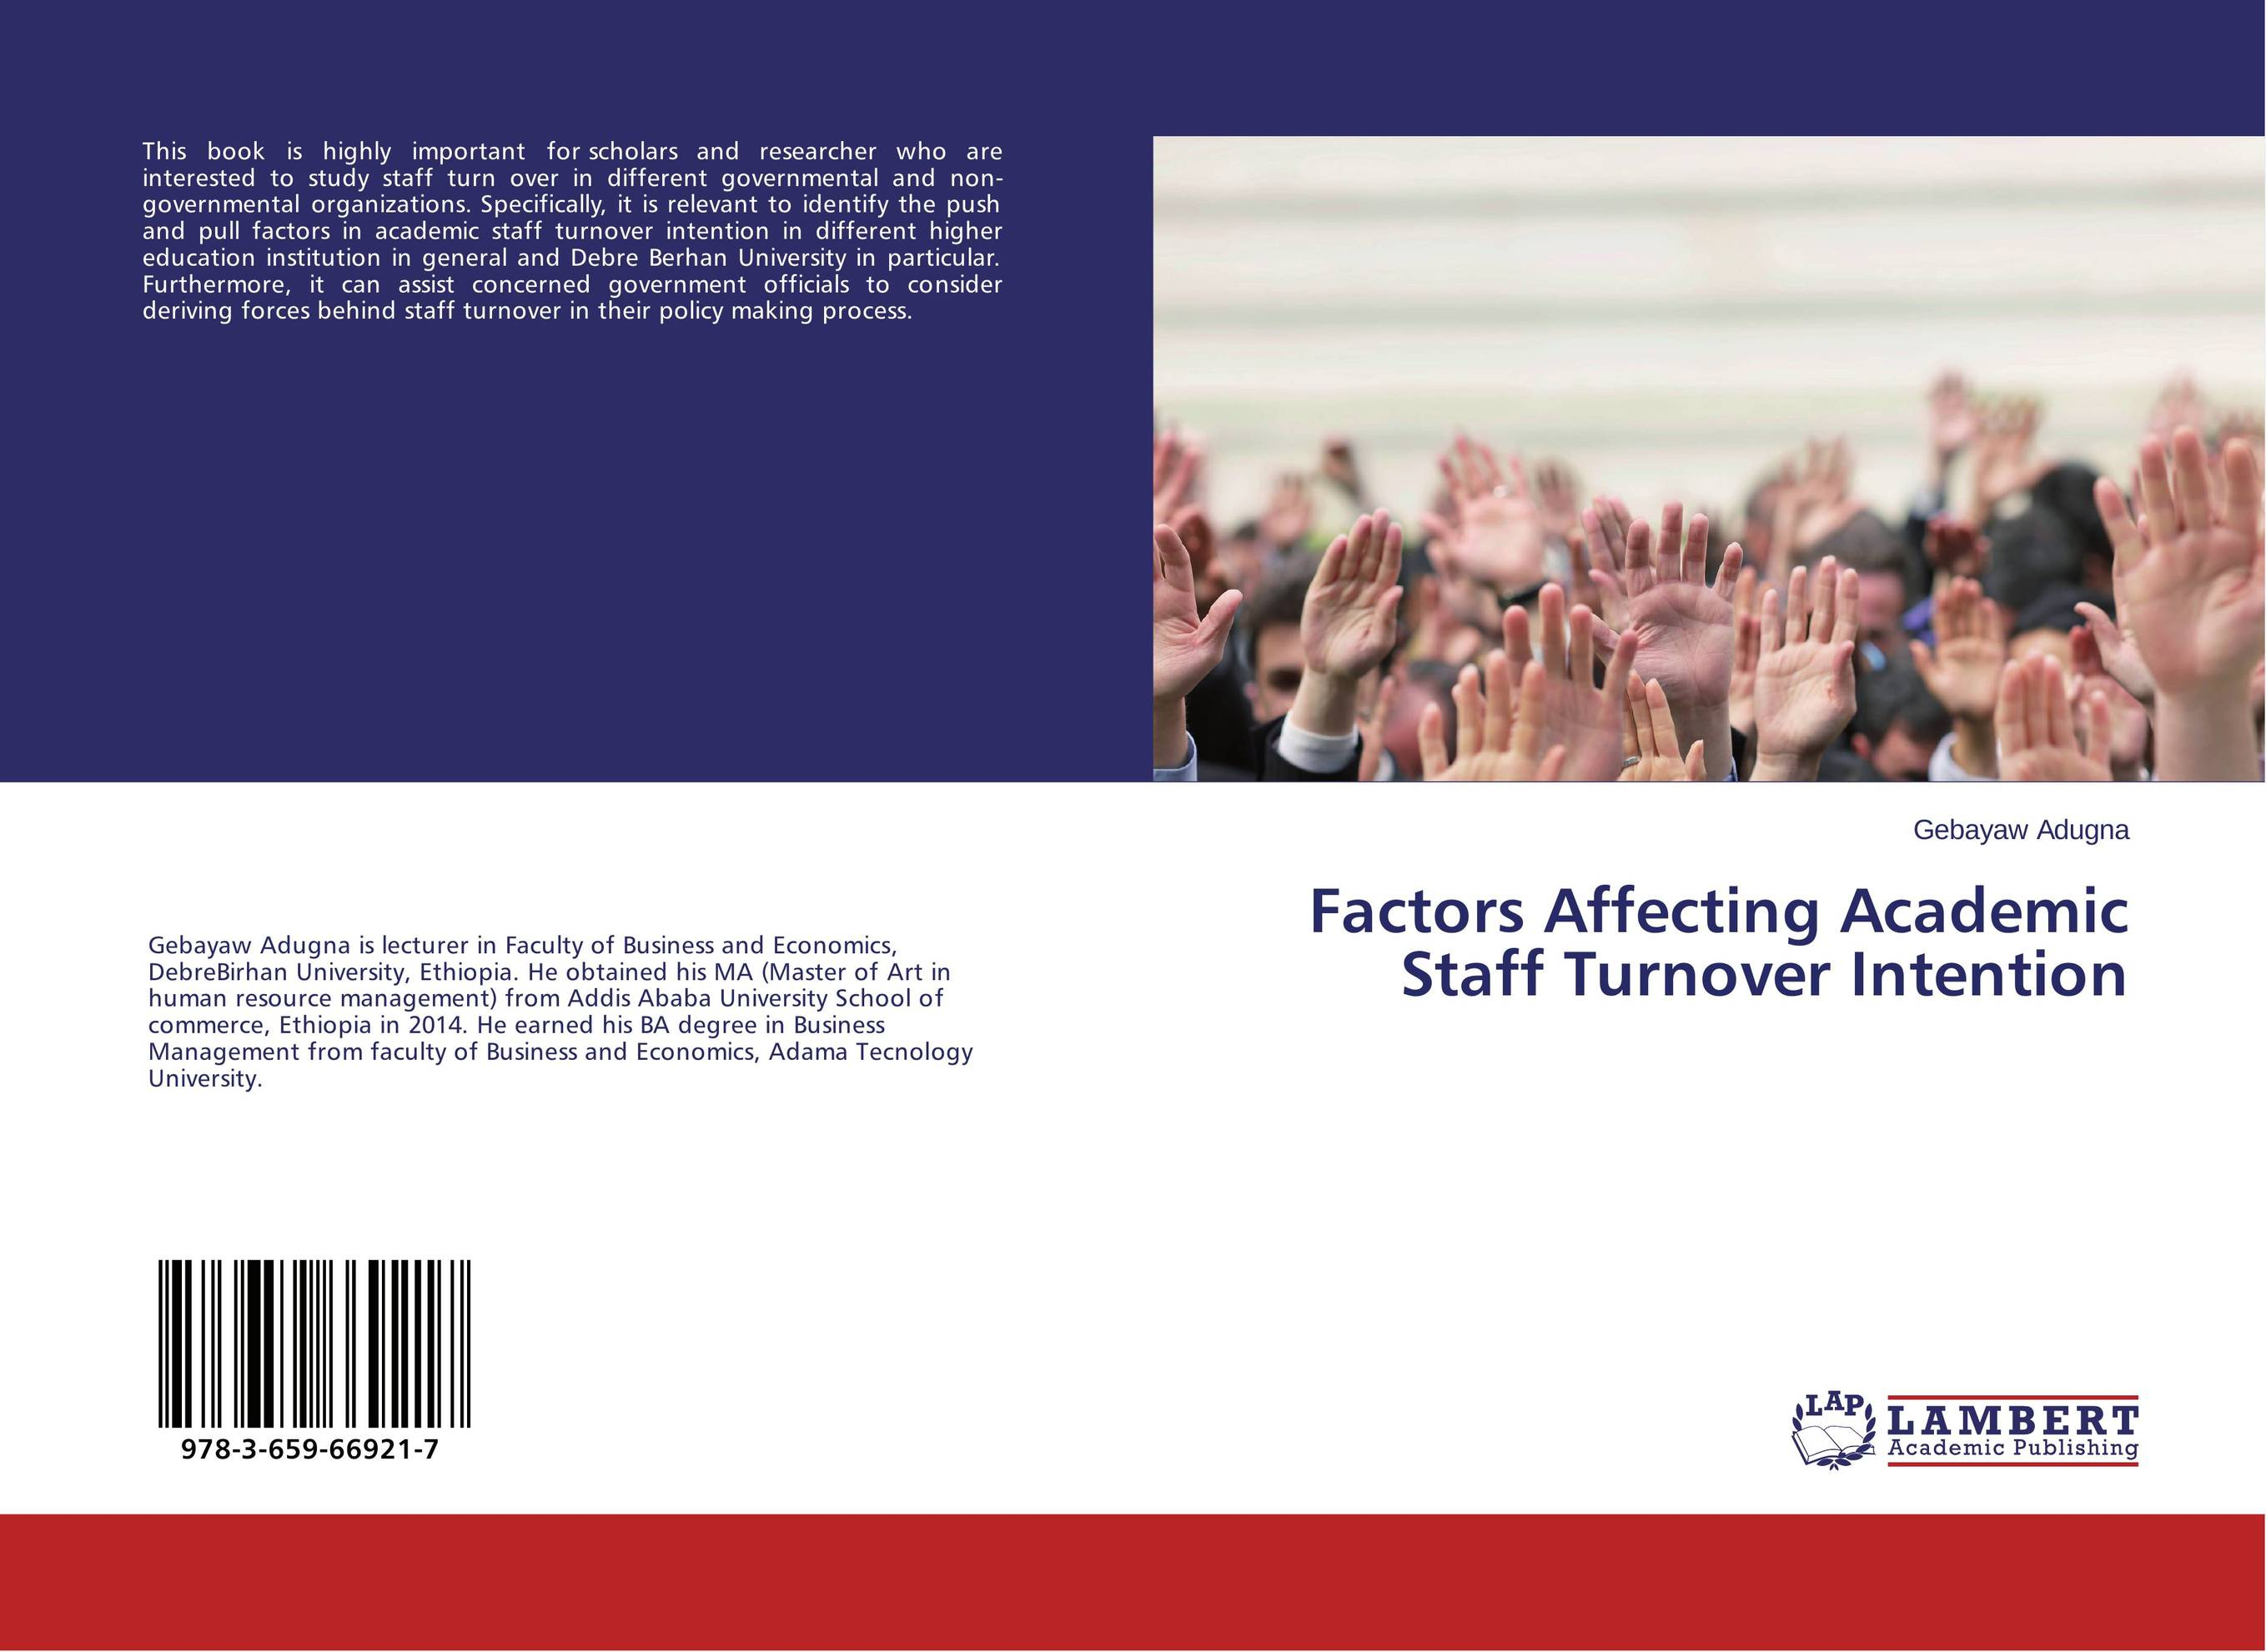 Factors Affecting Academic Staff Turnover Intention the salmon who dared to leap higher